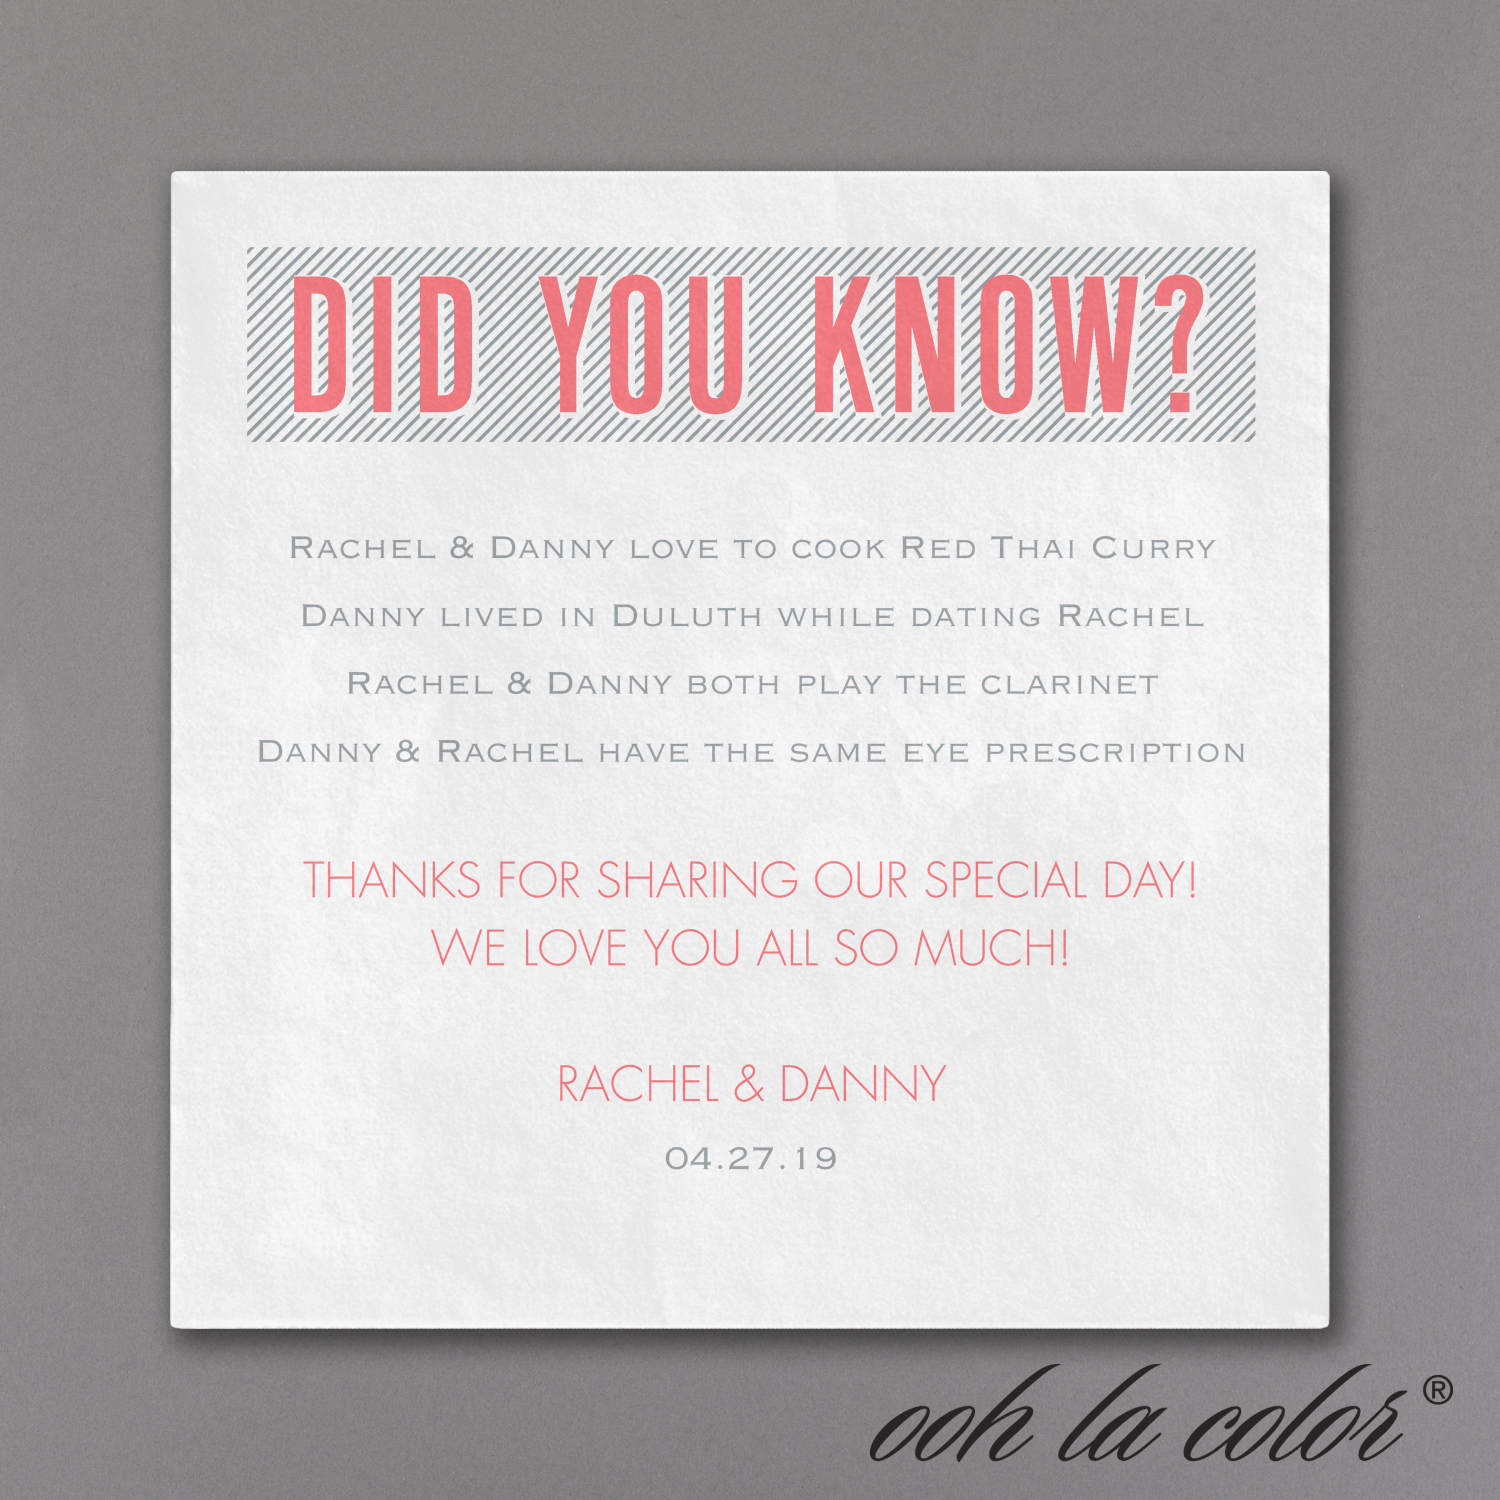 did you know facts napkin wedding